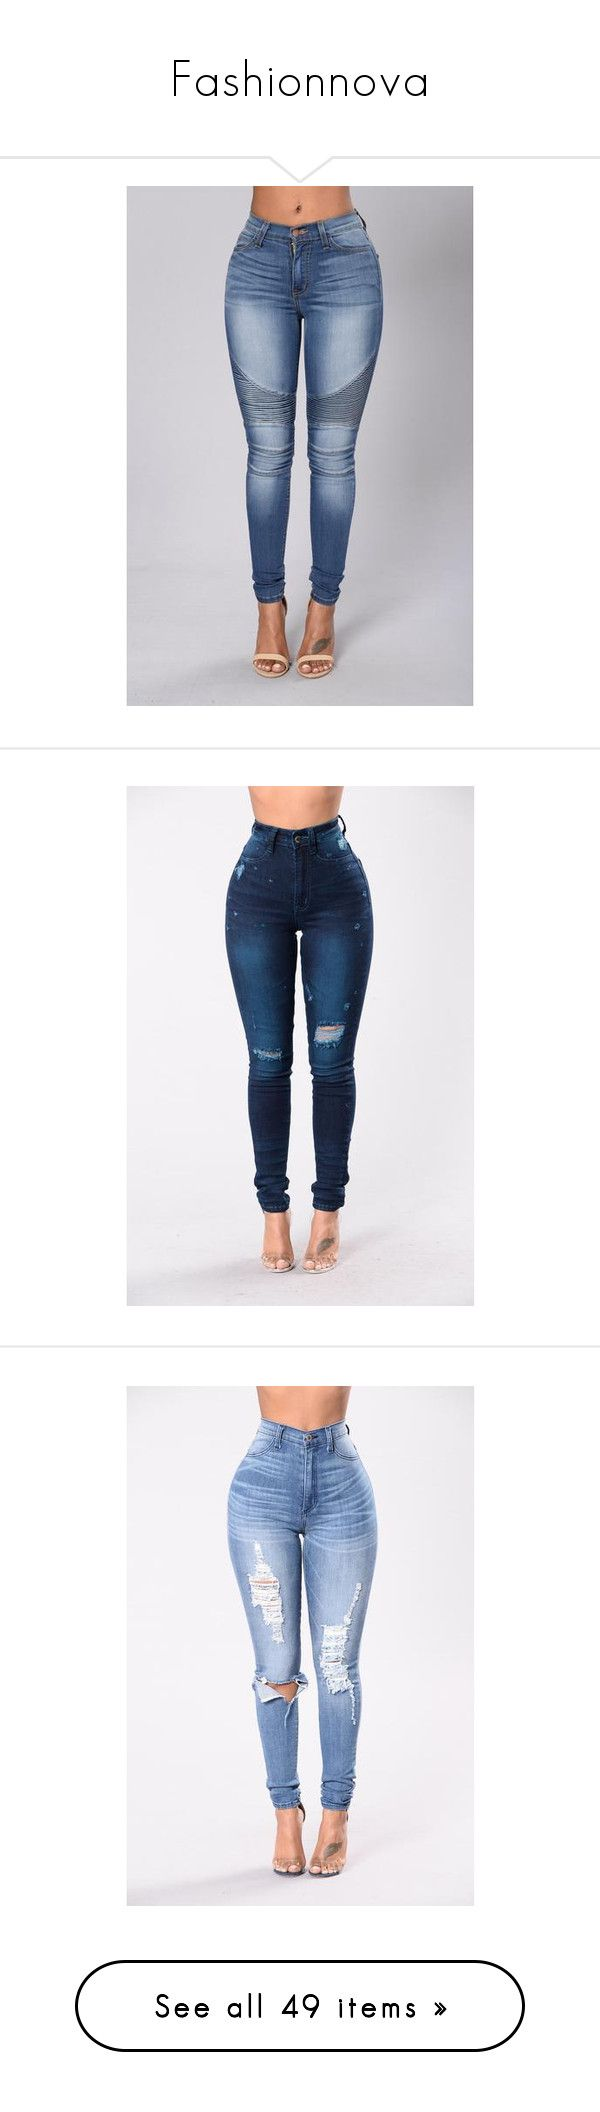 """""""Fashionnova"""" by bigdaddycam43 ❤ liked on Polyvore featuring jeans, bottoms, womens jeans, olive green jeans, army green jeans, olive jeans, blue jeans, pants, high waisted distressed jeans and high rise skinny jeans"""